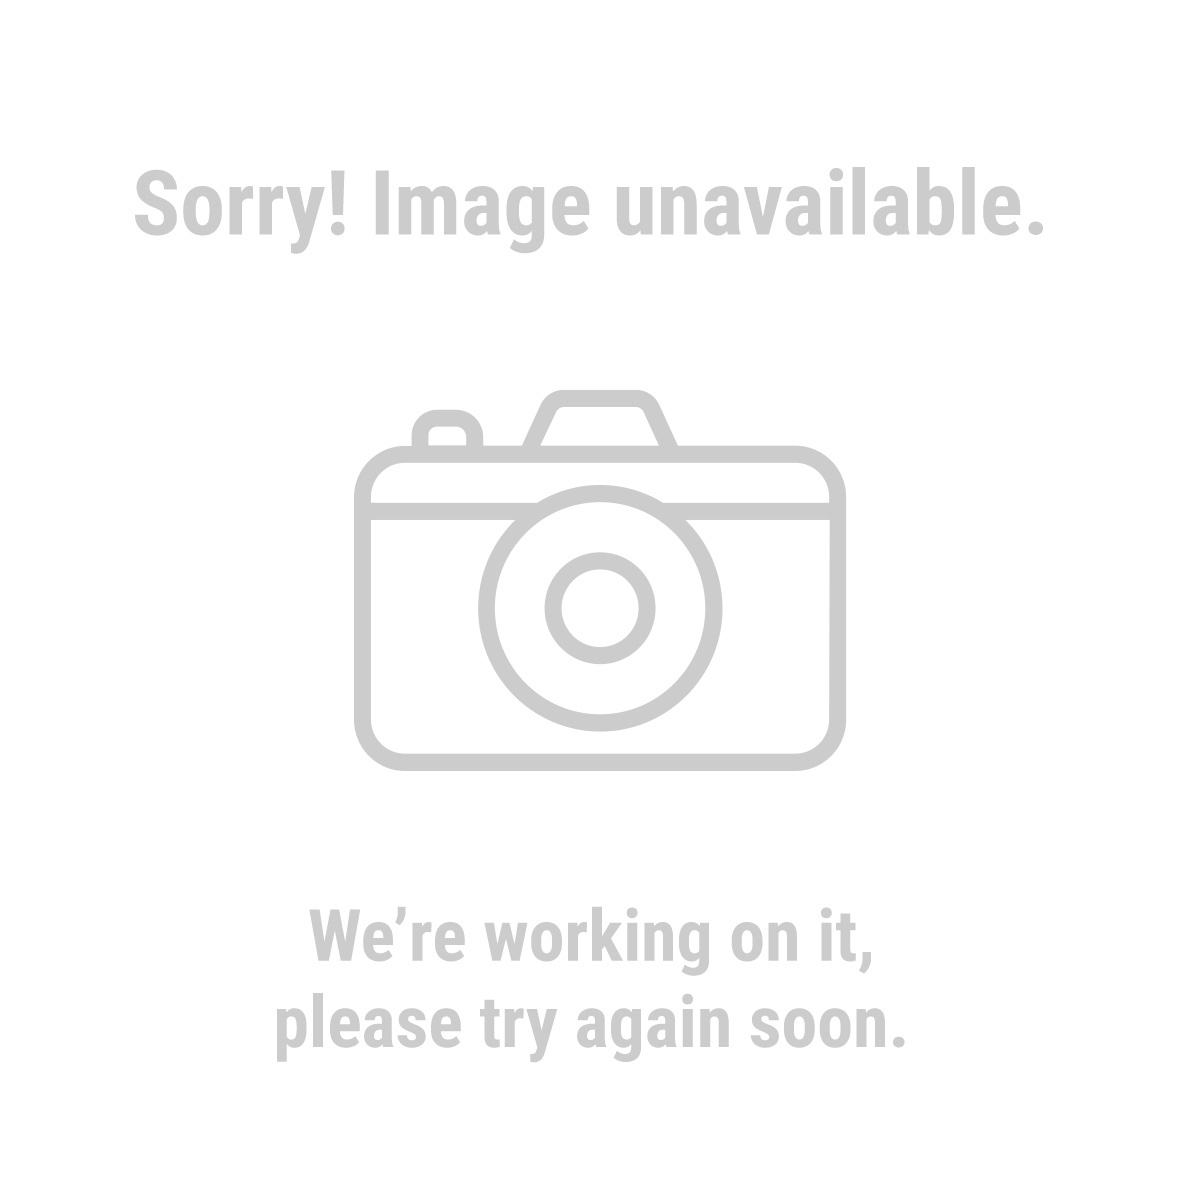 Chicago Electric Welding 95015 6 Ft x 8 Ft Fiberglass Welding Blanket